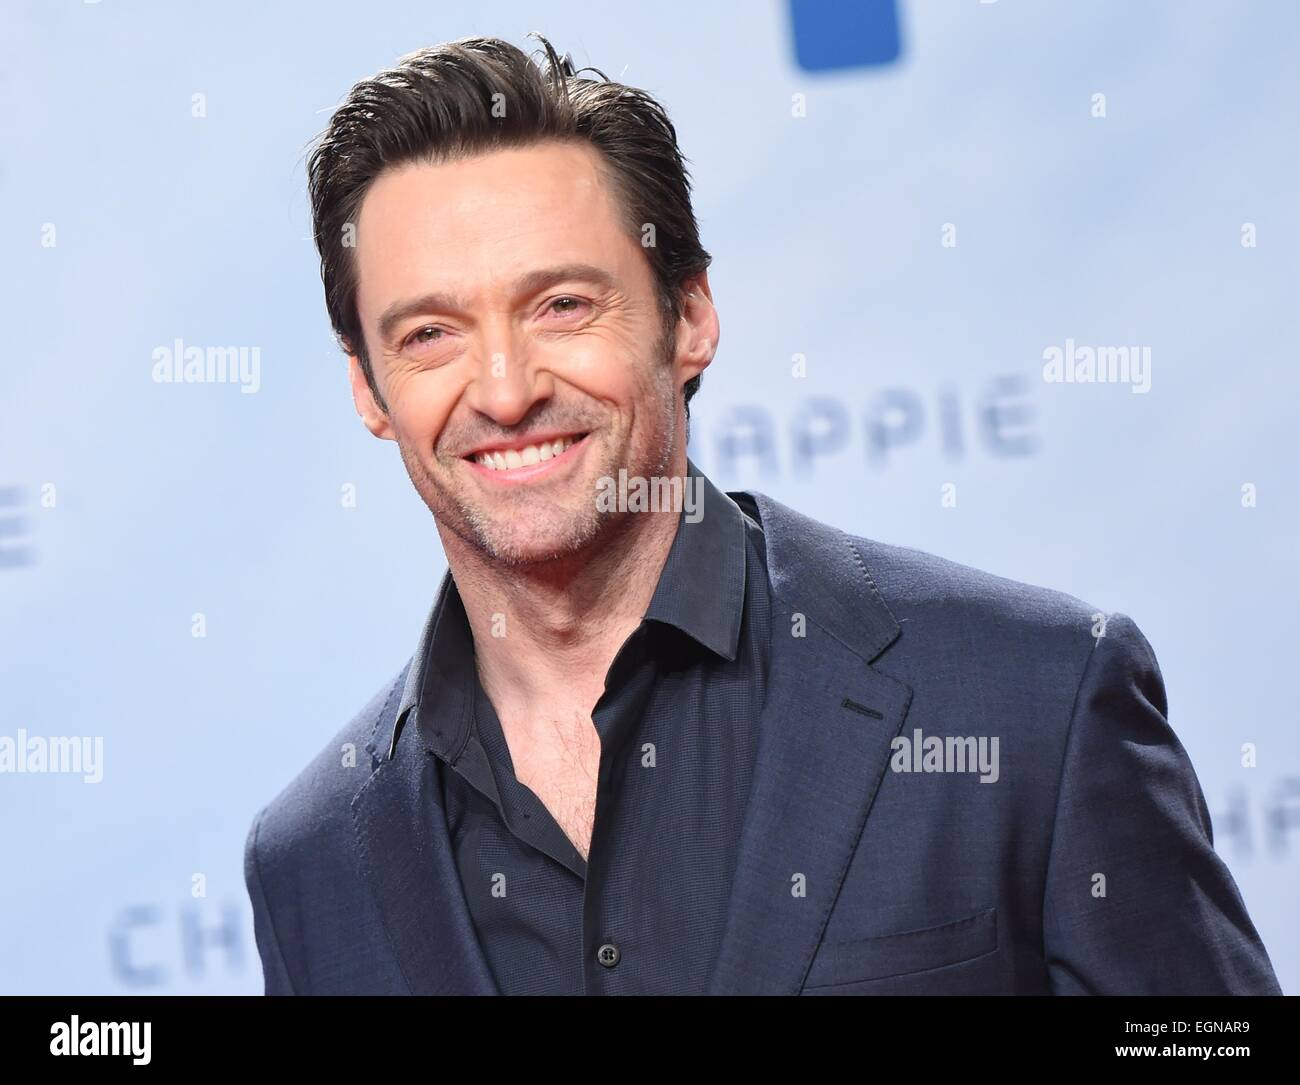 Australian actor Hugh Jackman    attends the fan event for her new film 'Chappie' in Berlin, Germany, 27 - Stock Image